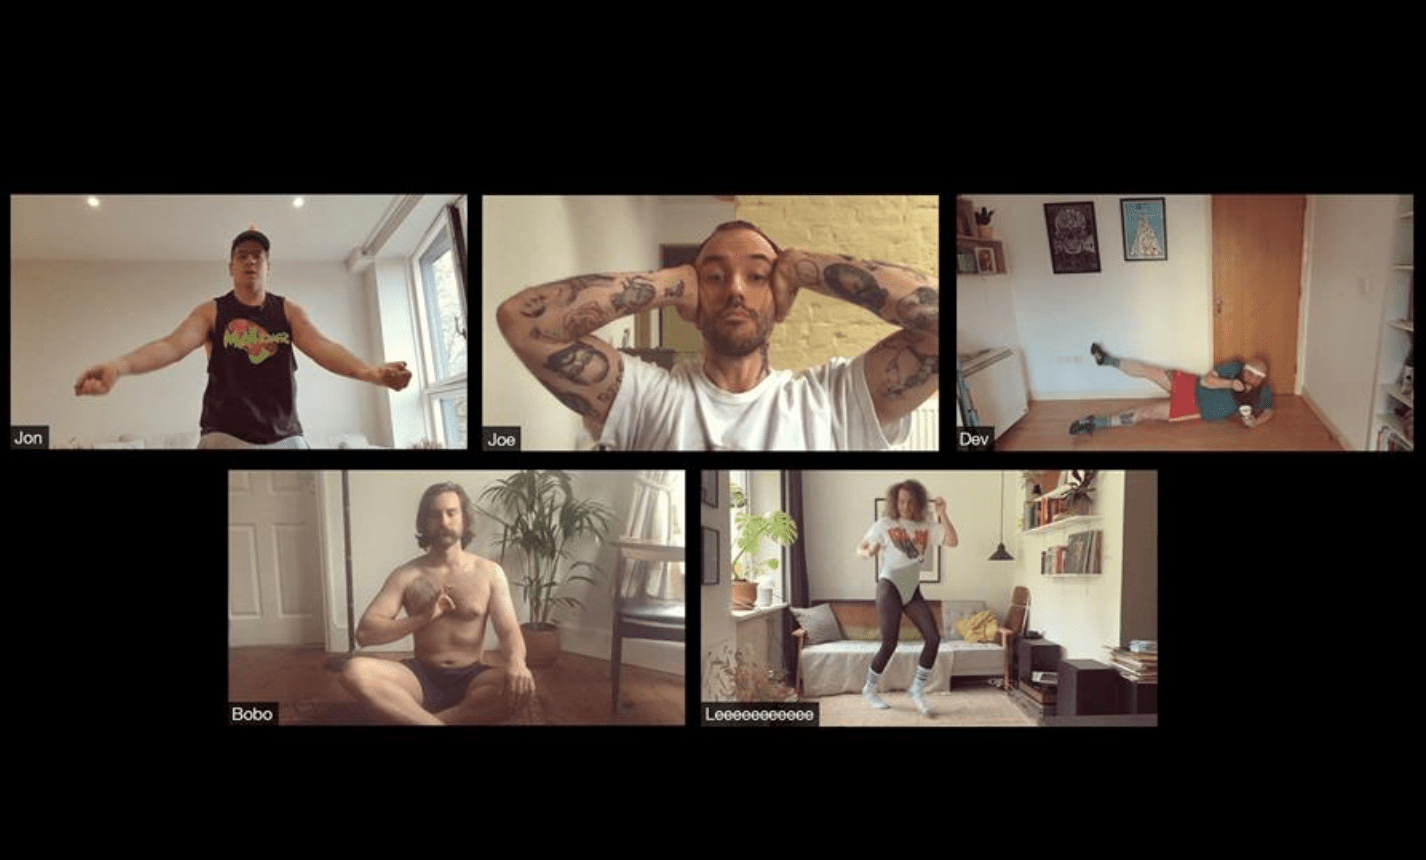 IDLES have returned with a new single 'Mr. Motivator' - Watch Video